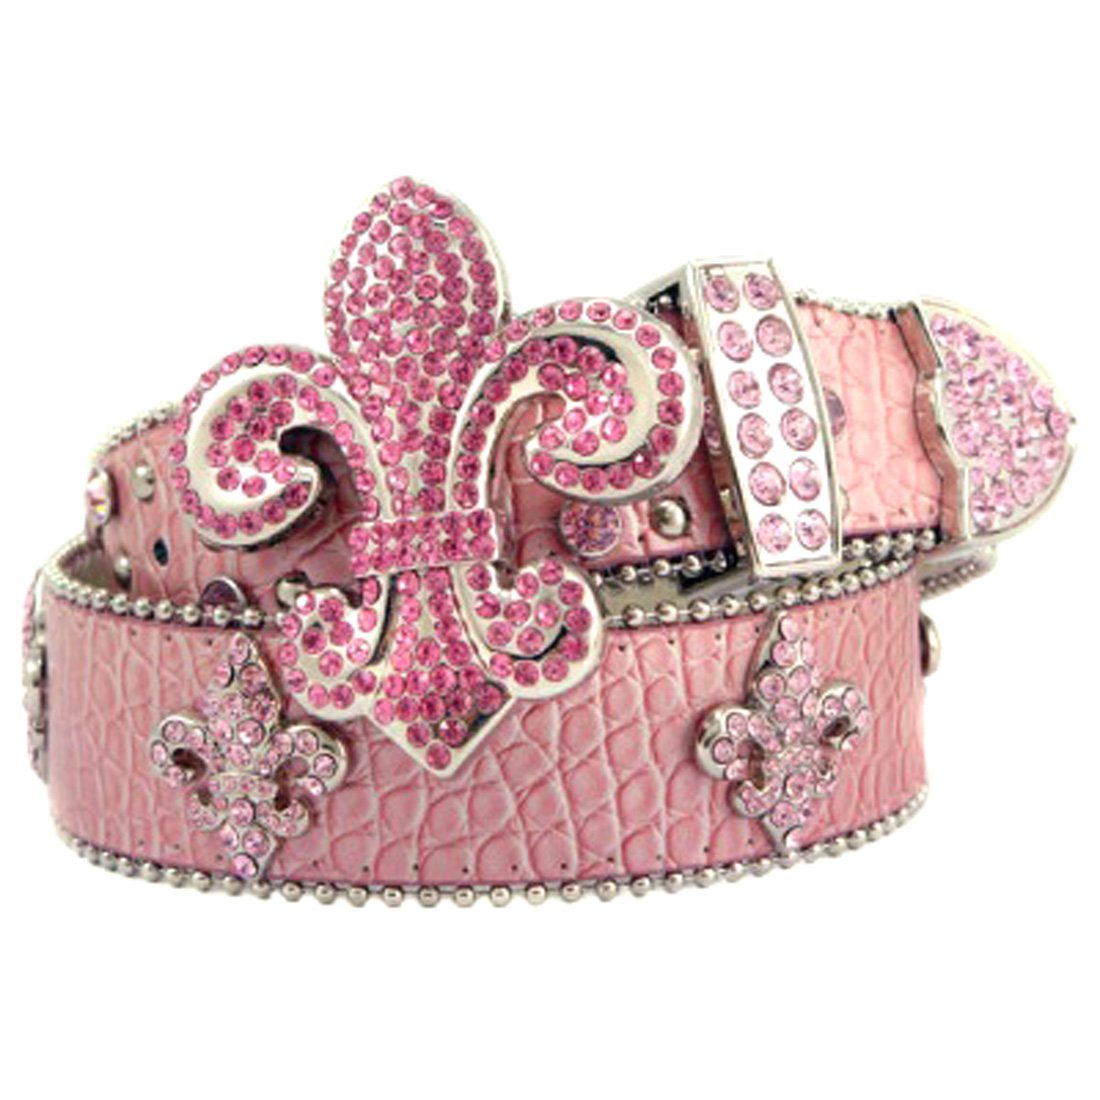 Pink Leather Belt in a Crocodile Pattern, Decorated with a Fleur De Lis Buckle with Pink Crystals, Size S/M